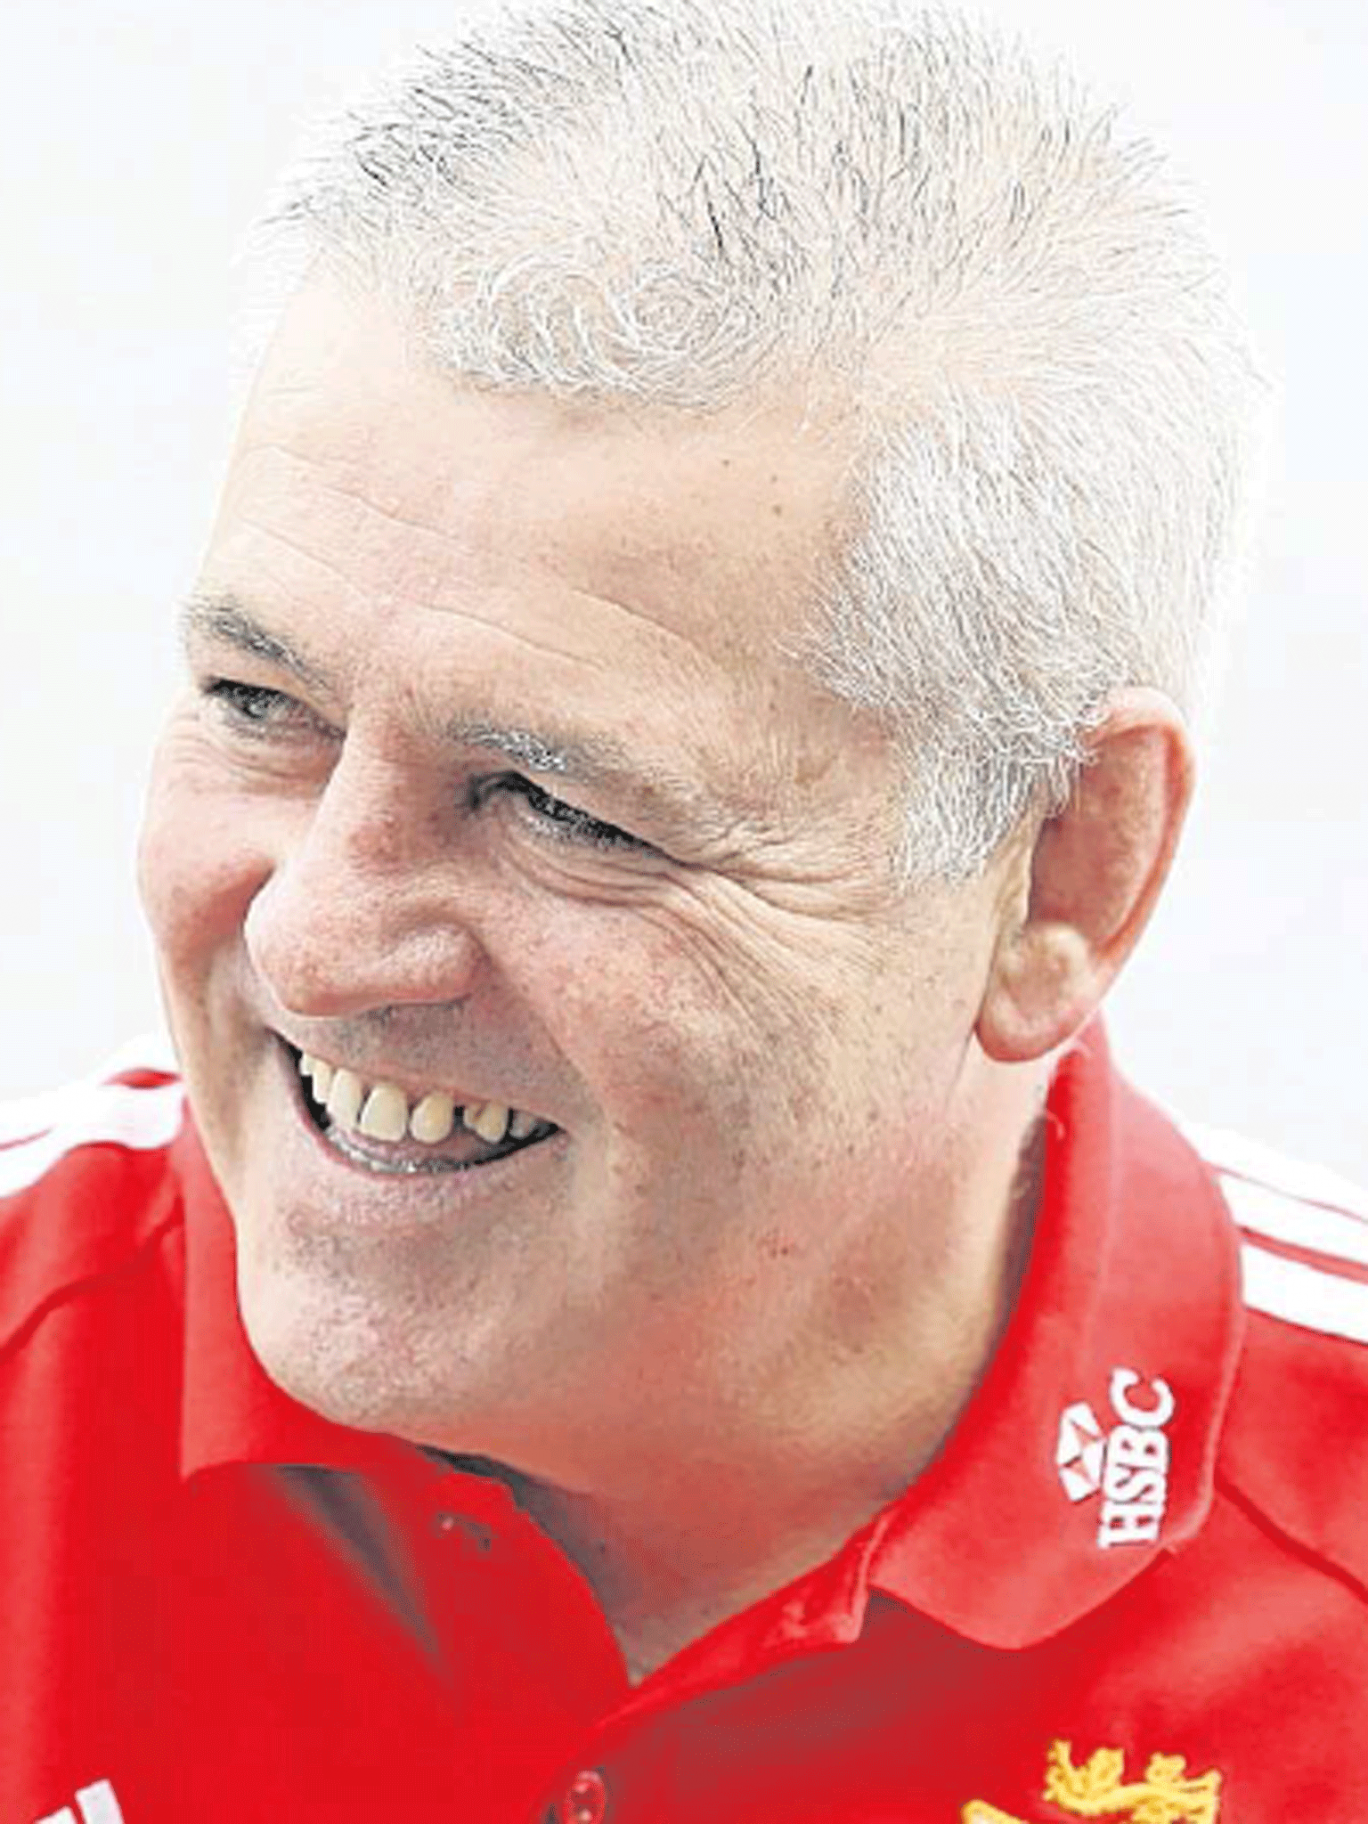 Warren Gatland's comments caused some raised eyebrows